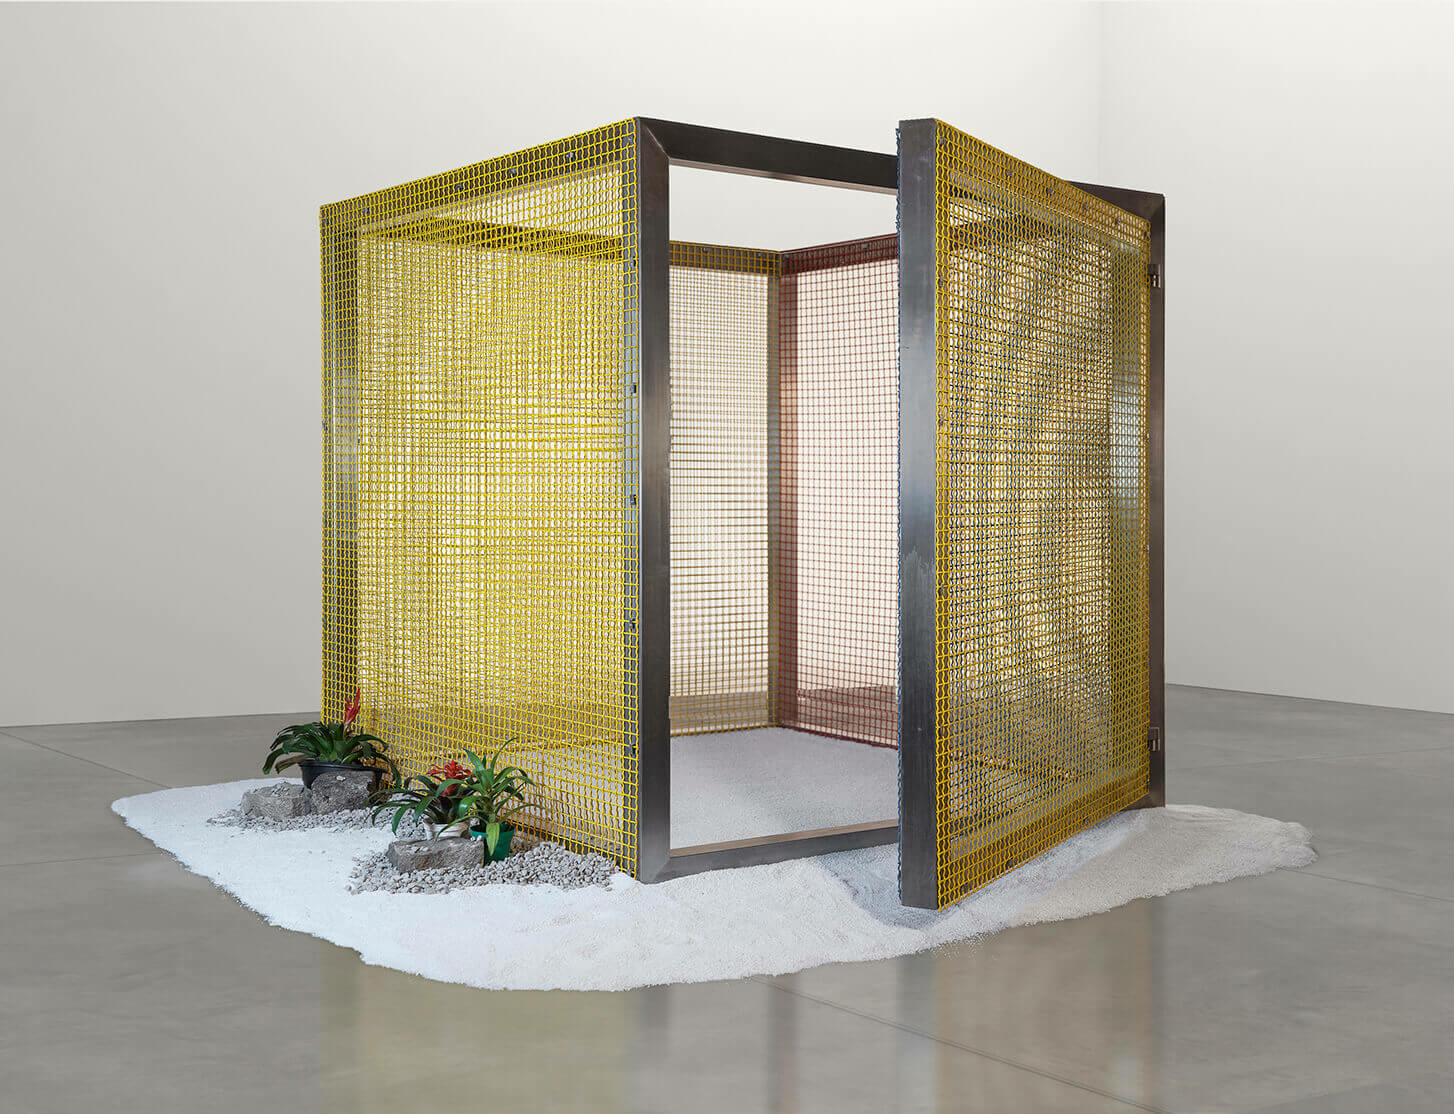 Announcing worldwide representation of the Estate of Hélio Oiticica